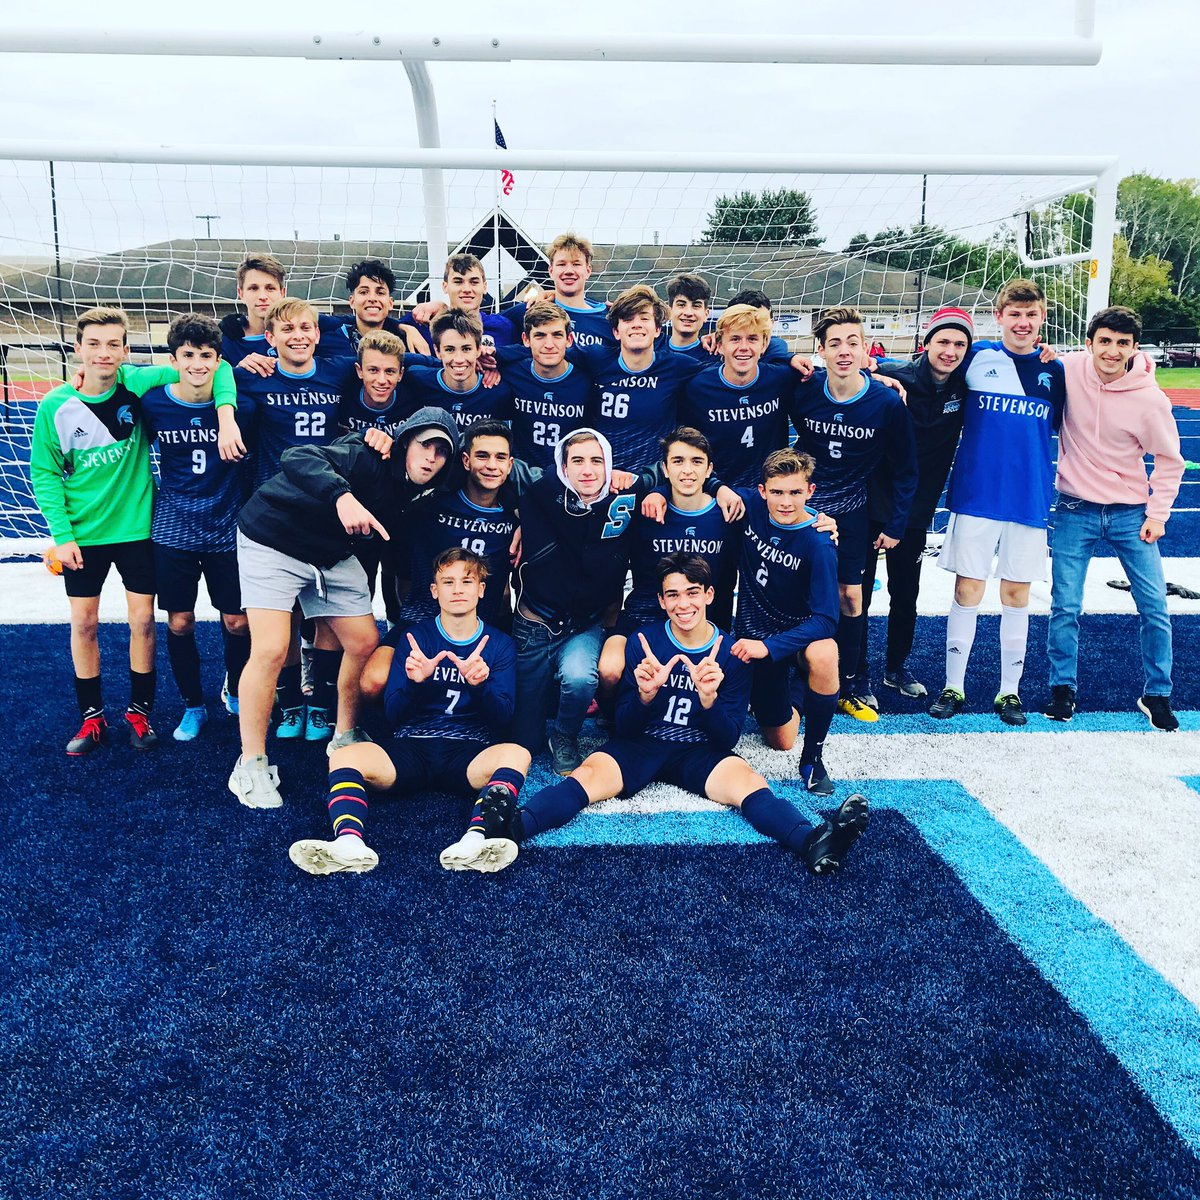 GAME DAY! District Semifinal   Vs Seaholm @ 5pm  Game will be played at Northville High School (6Mile)  $6 to get in. No passes.  Be there! <br>http://pic.twitter.com/JGrQ7eEo7p